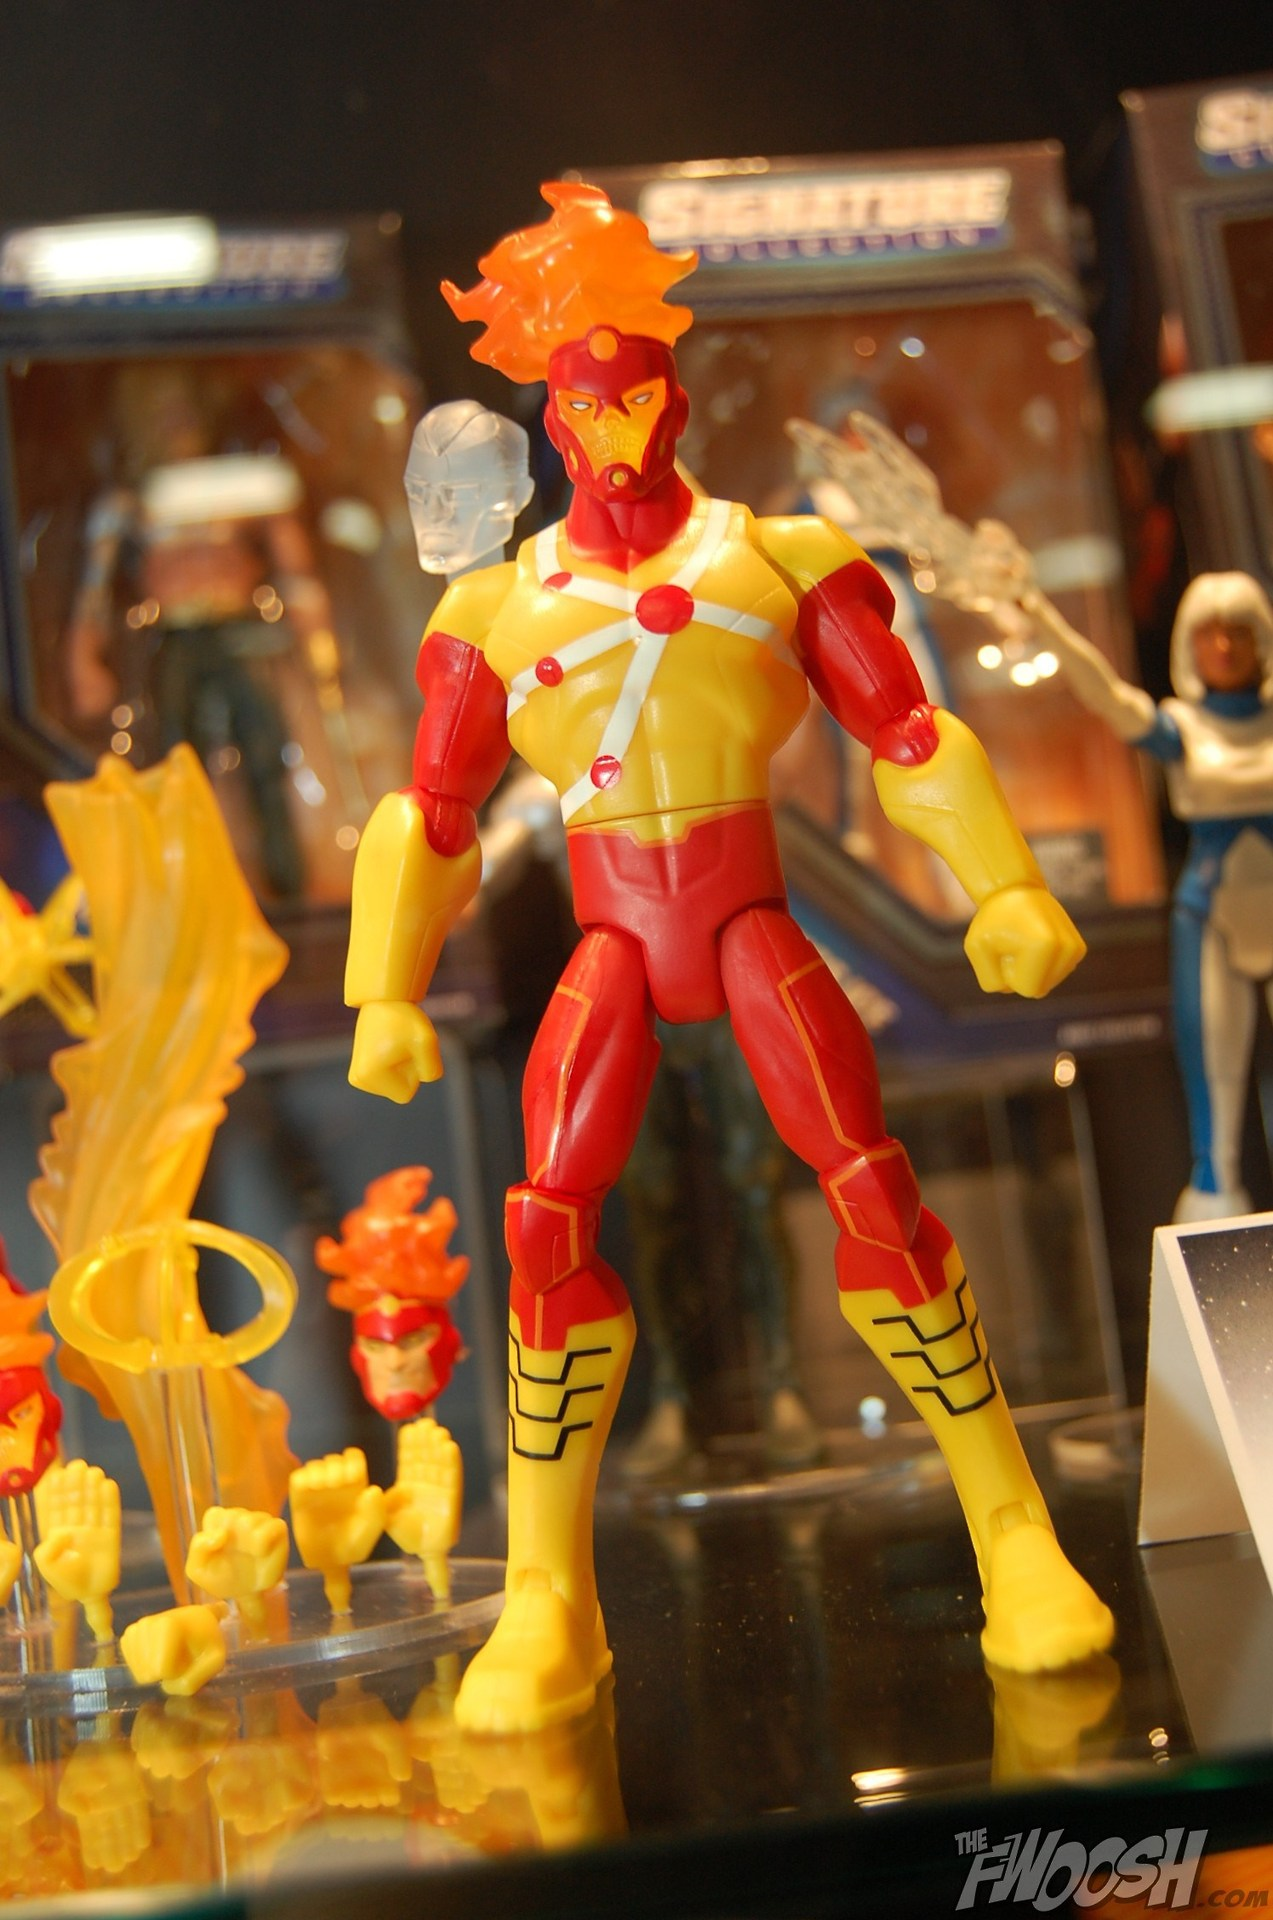 Firestorm Matty Collector Total Heroes action figure